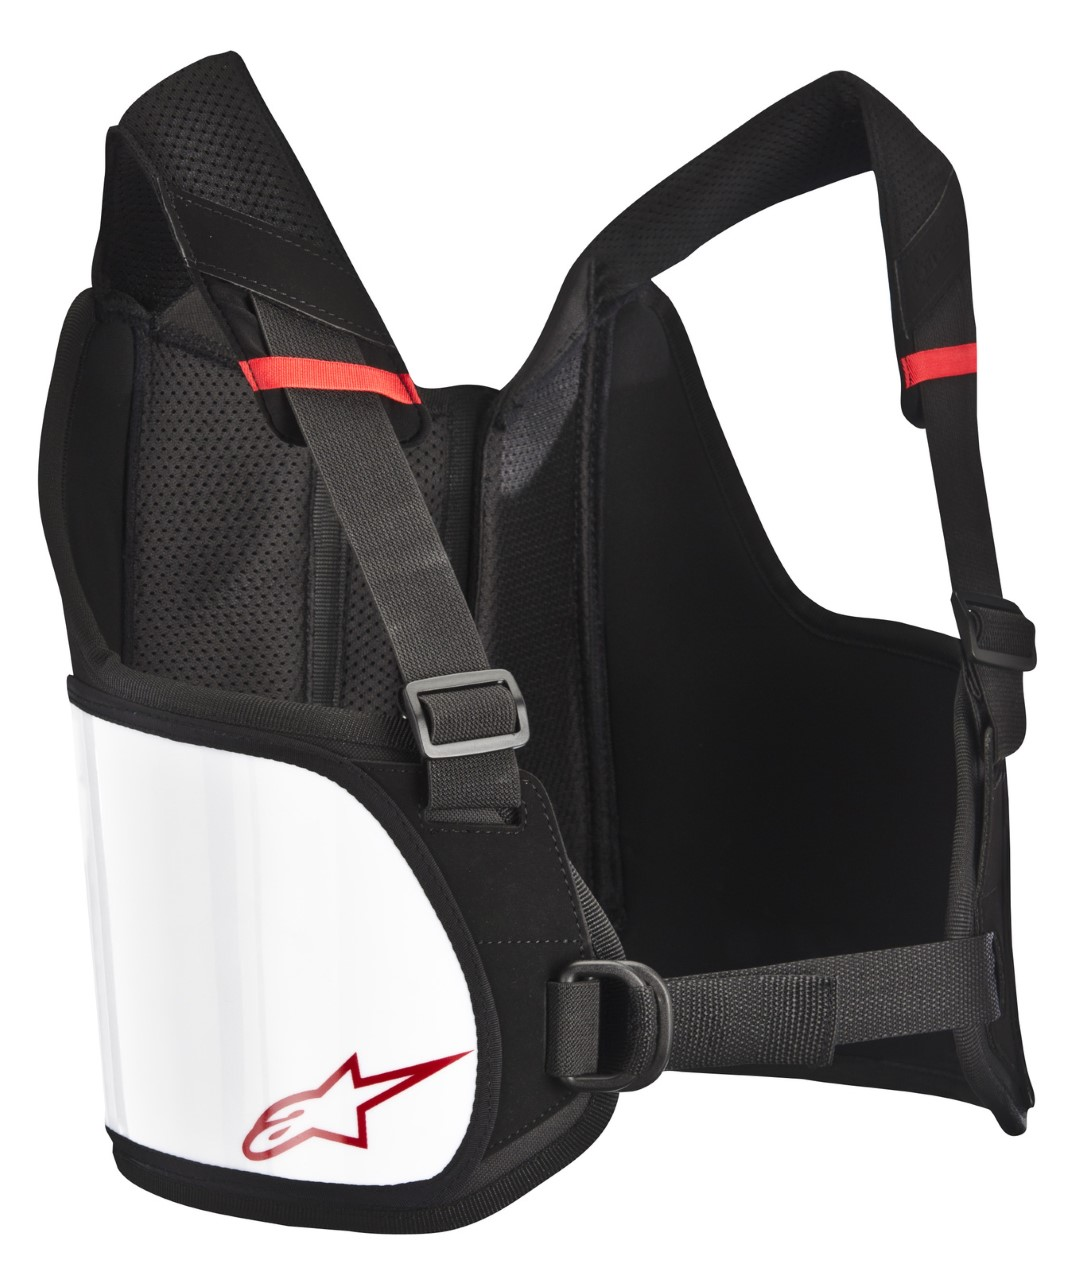 ALPINESTARS -BIONIC RIB SUPPORT-BLACK/WHITE-S/L